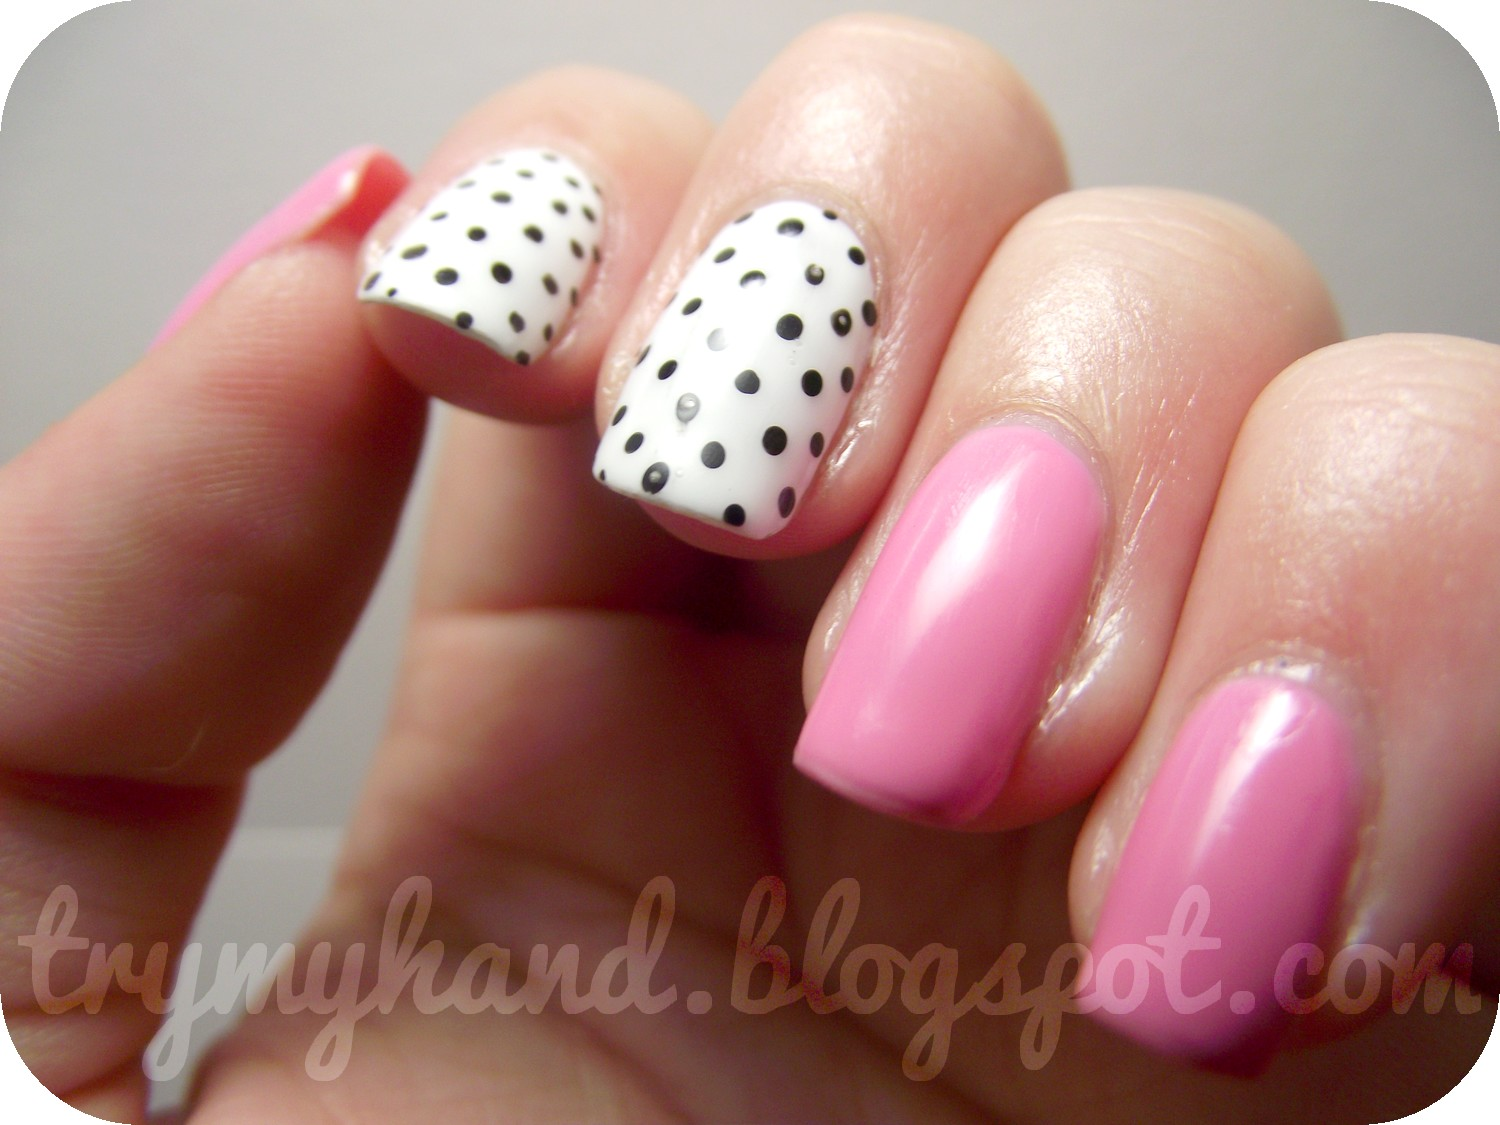 Try my hand white pink and black spots may i add and it actually managed to last for 5 whole days without me getting frustrated and bored with it and ripping it off so proud of myself solutioingenieria Choice Image